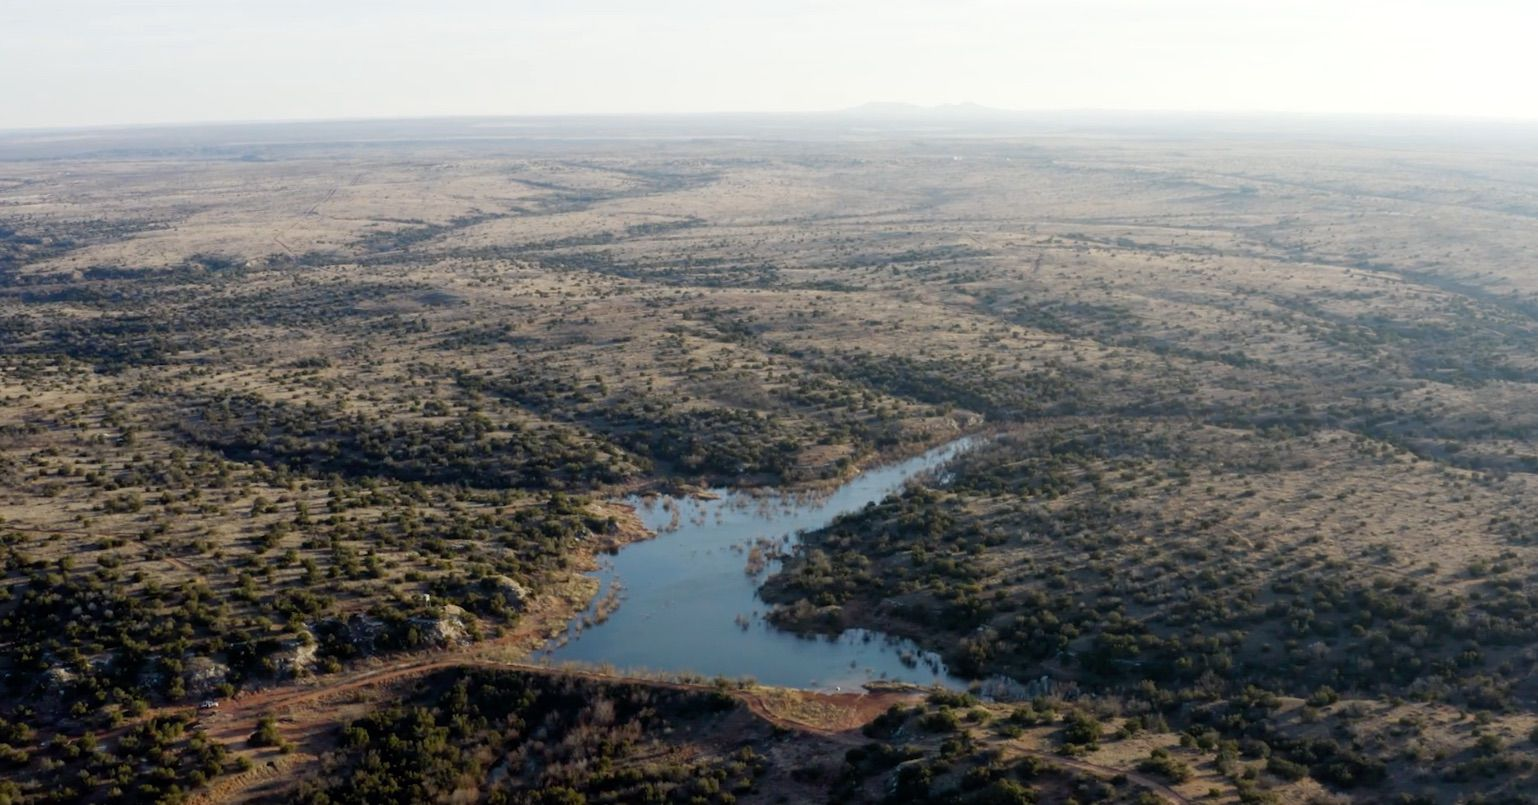 The ranch is northwest of Abilene.